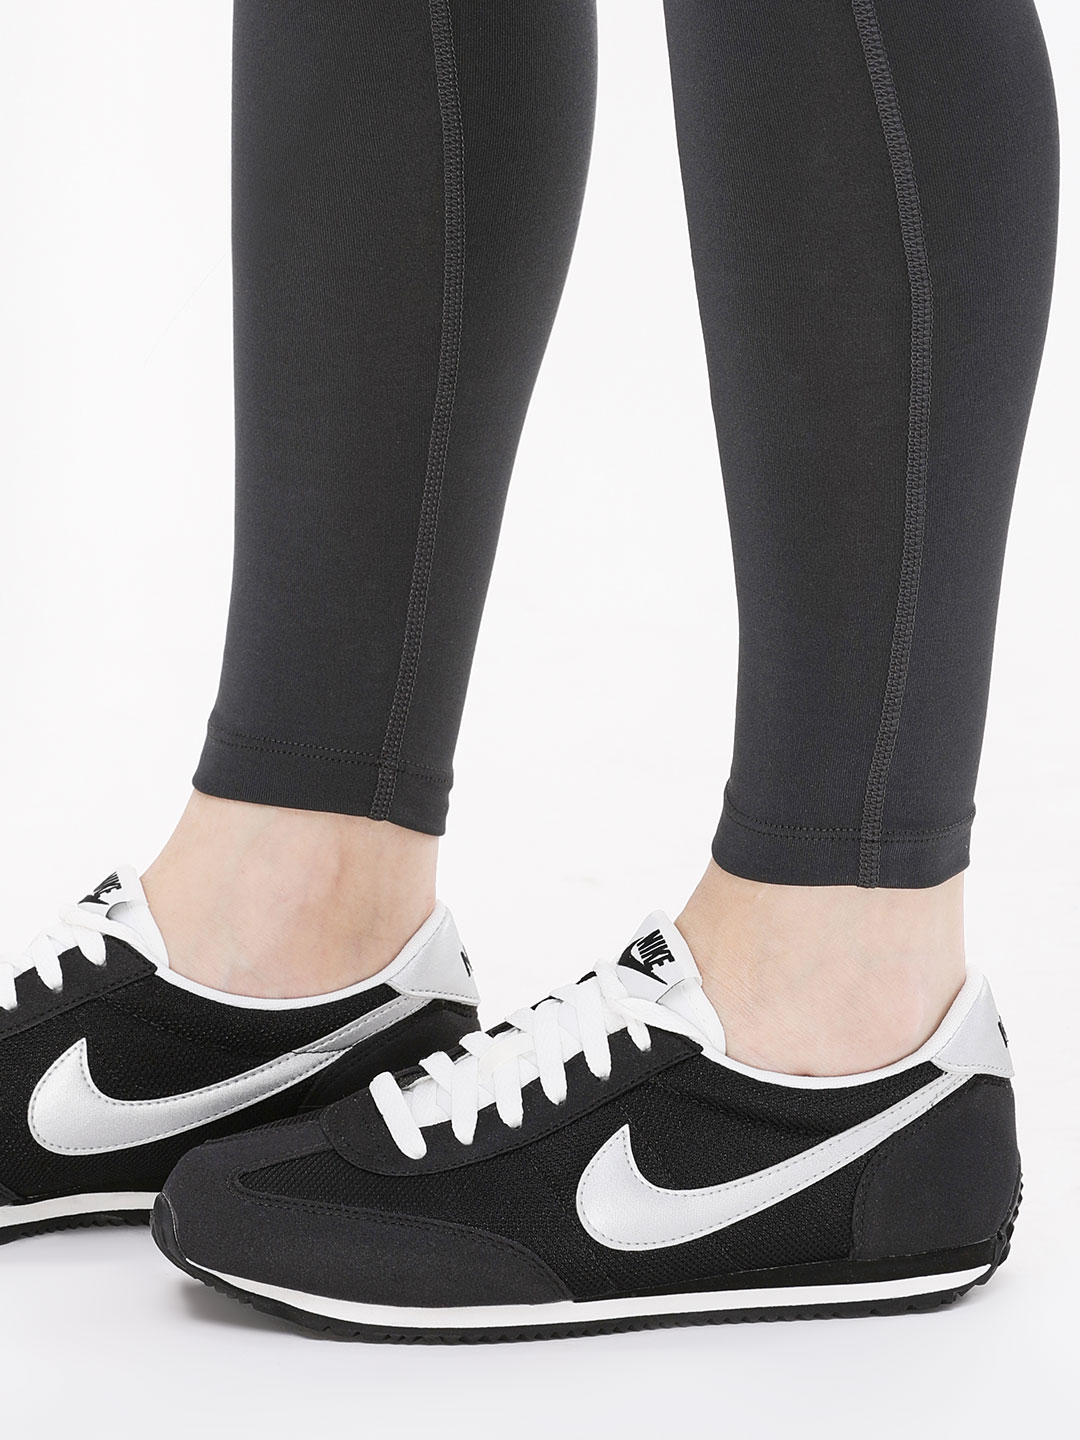 Black Oceania Textile Running Shoes